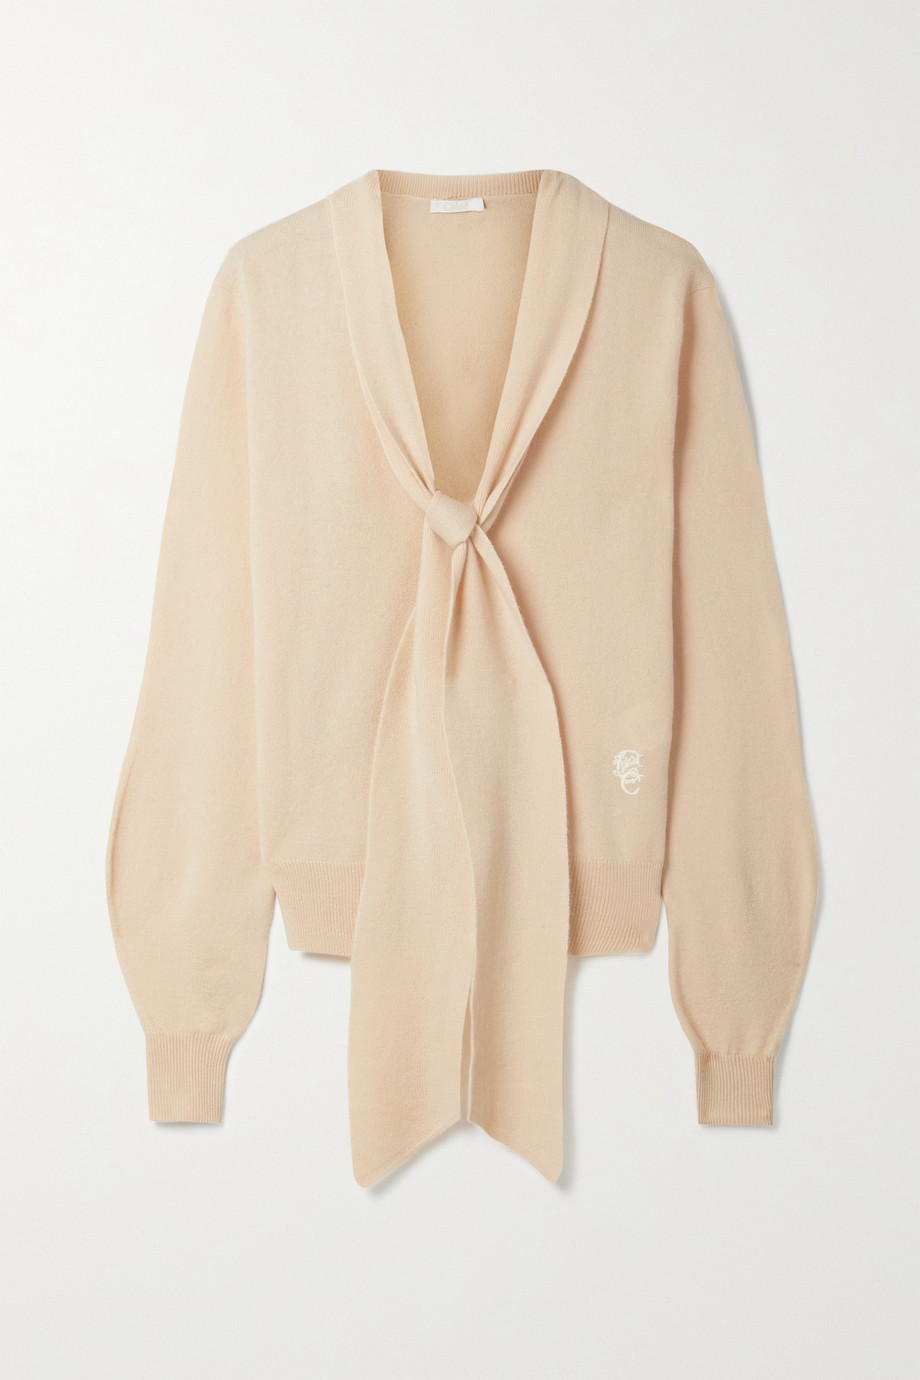 Chloé Embroidered cashmere sweater